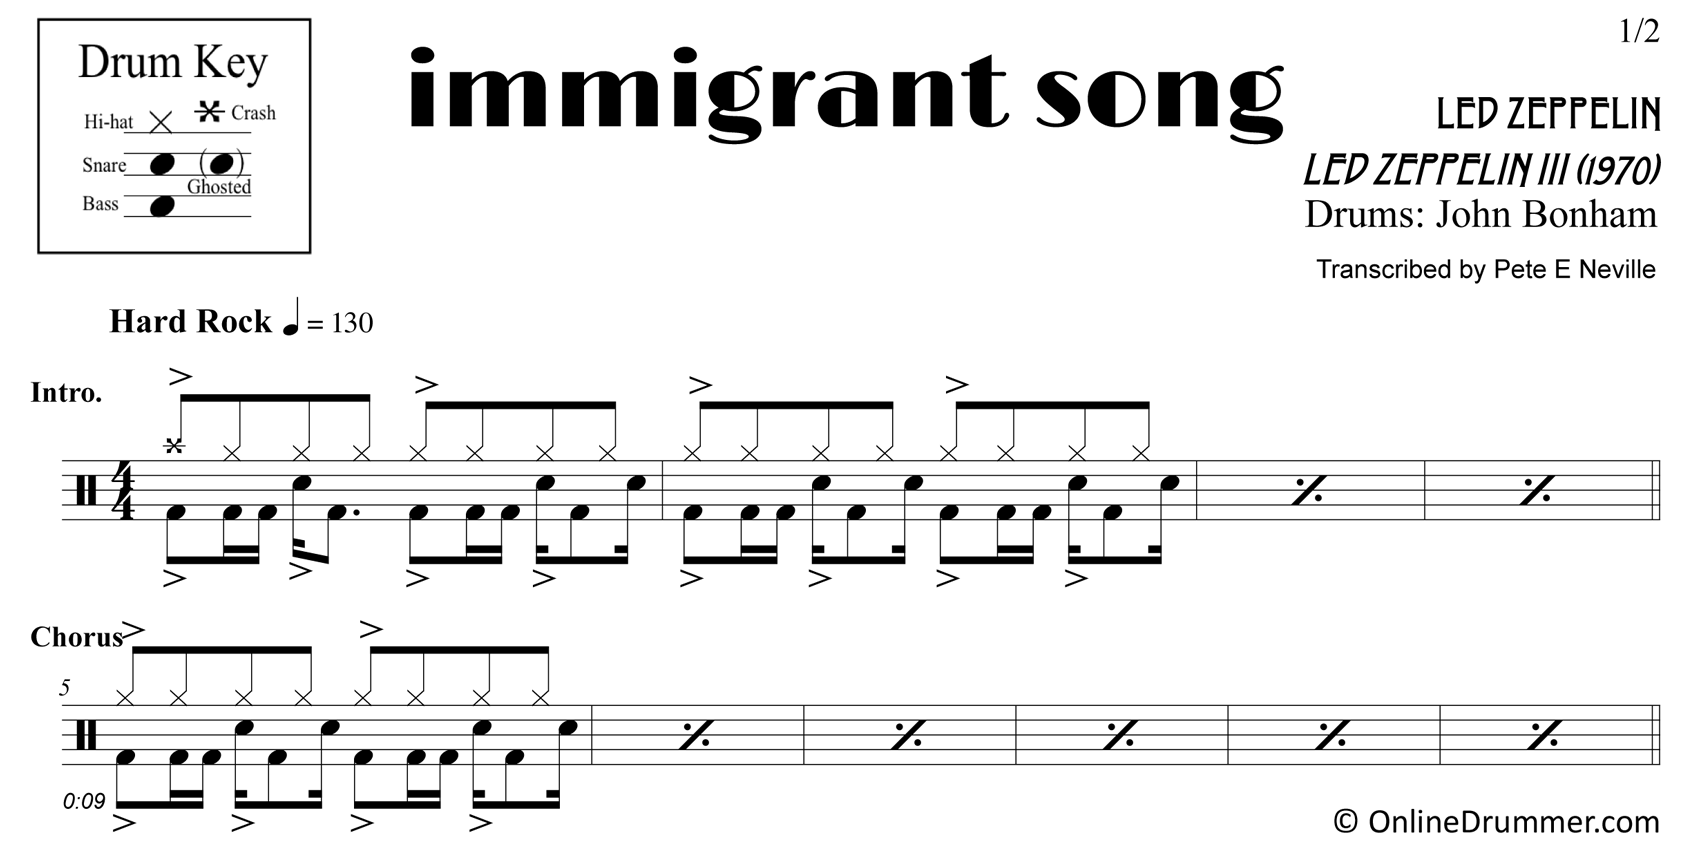 Immigrant Song - Led Zeppelin - Drum Sheet Music